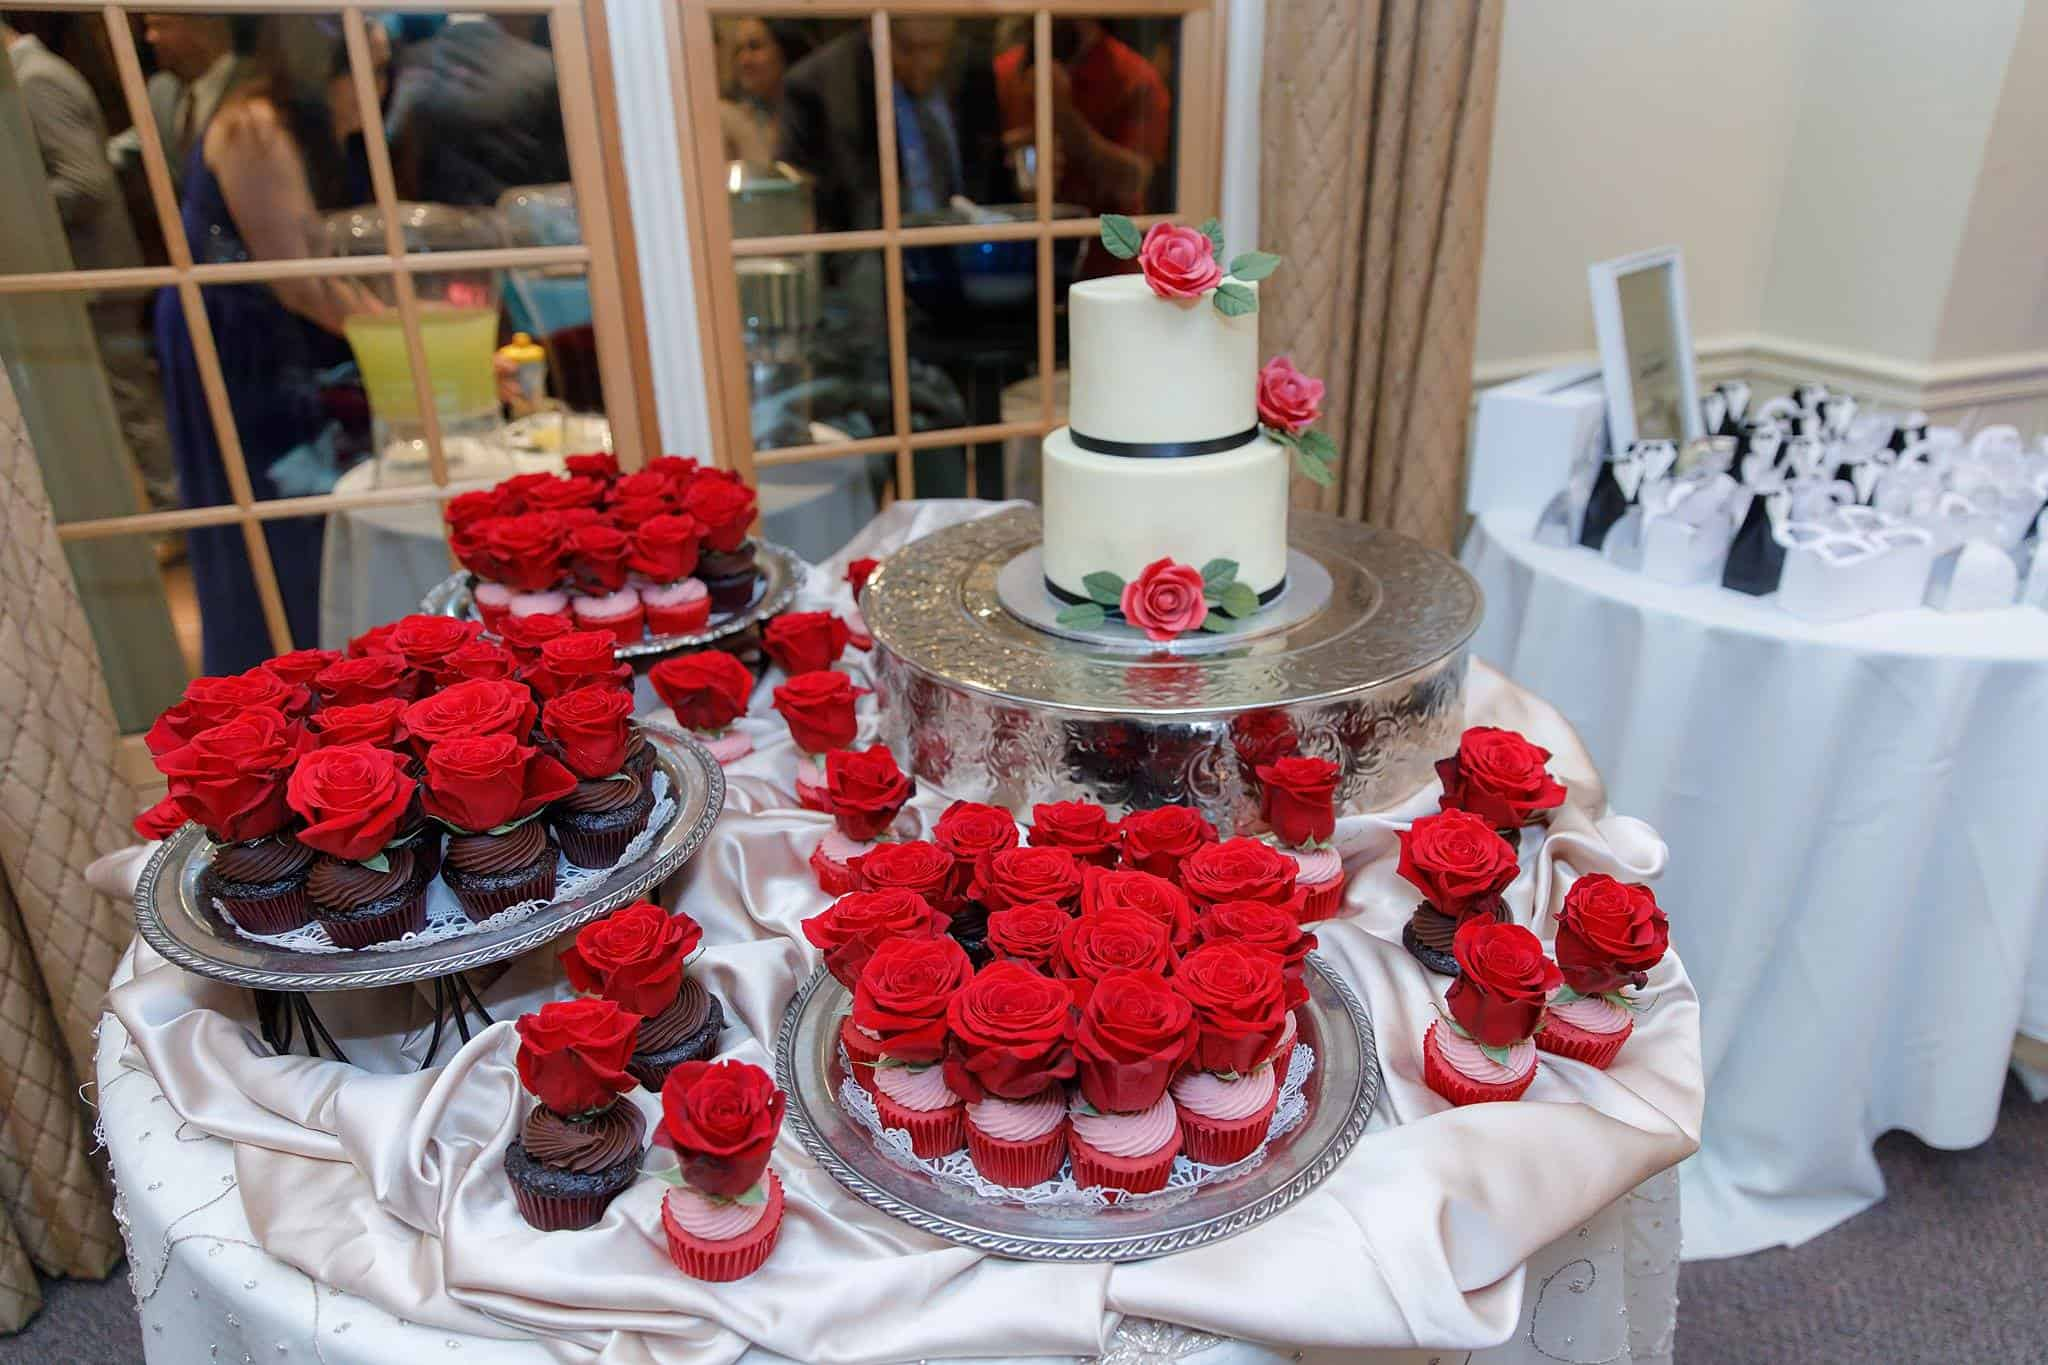 Beauty and the Beast Themed Dessert Table at Wedding with Chocolate and Strawberry Cupcakes topped with a Red Rose displayed on silver platters